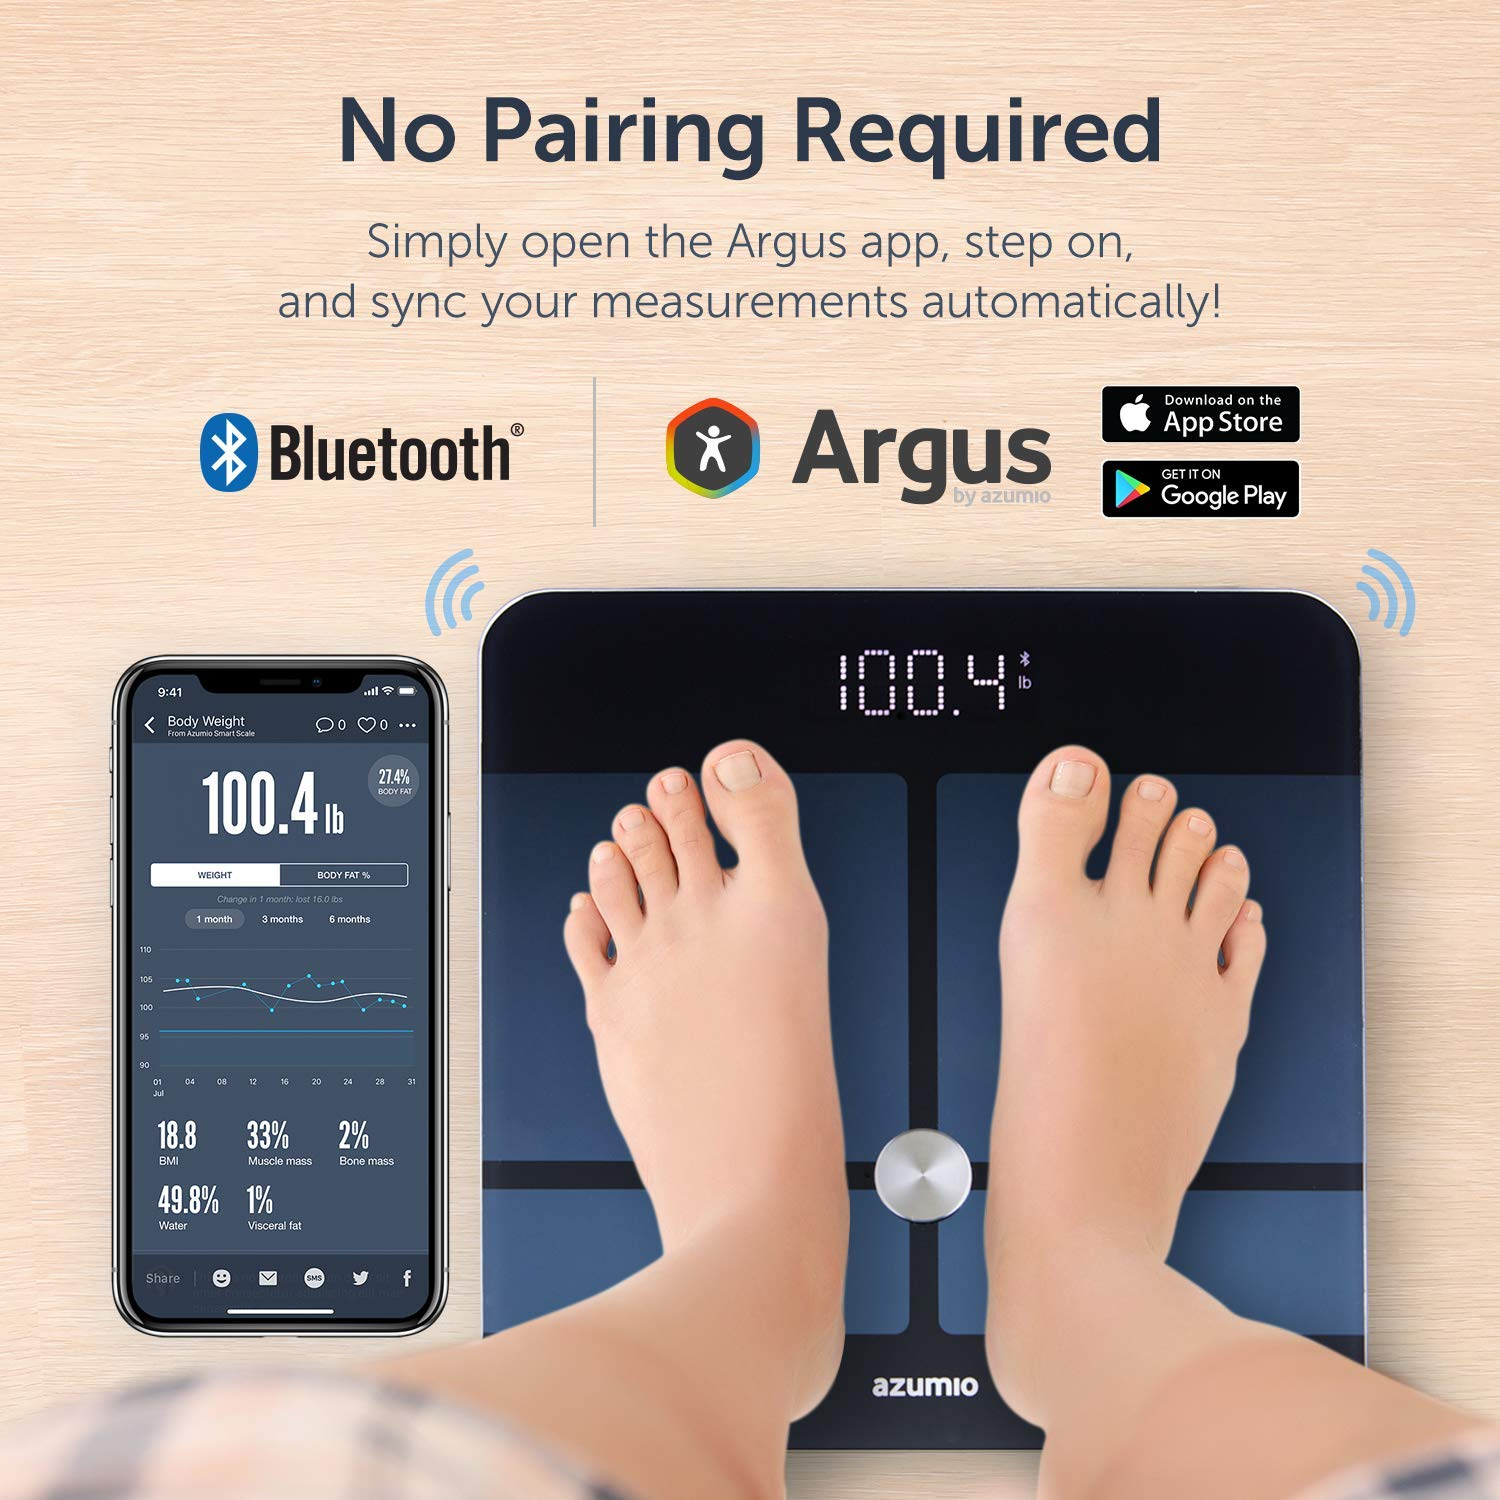 Azumio Bluetooth Digital Smart Scale for Body Weight | 6mm Tempered Glass LED Display Measures Body Fat, Visceral, BMI, BMR, Muscle Mass, Bone Mass Water Weight in KG or LB | iOS & Android Compatible by Azumio (Image #4)